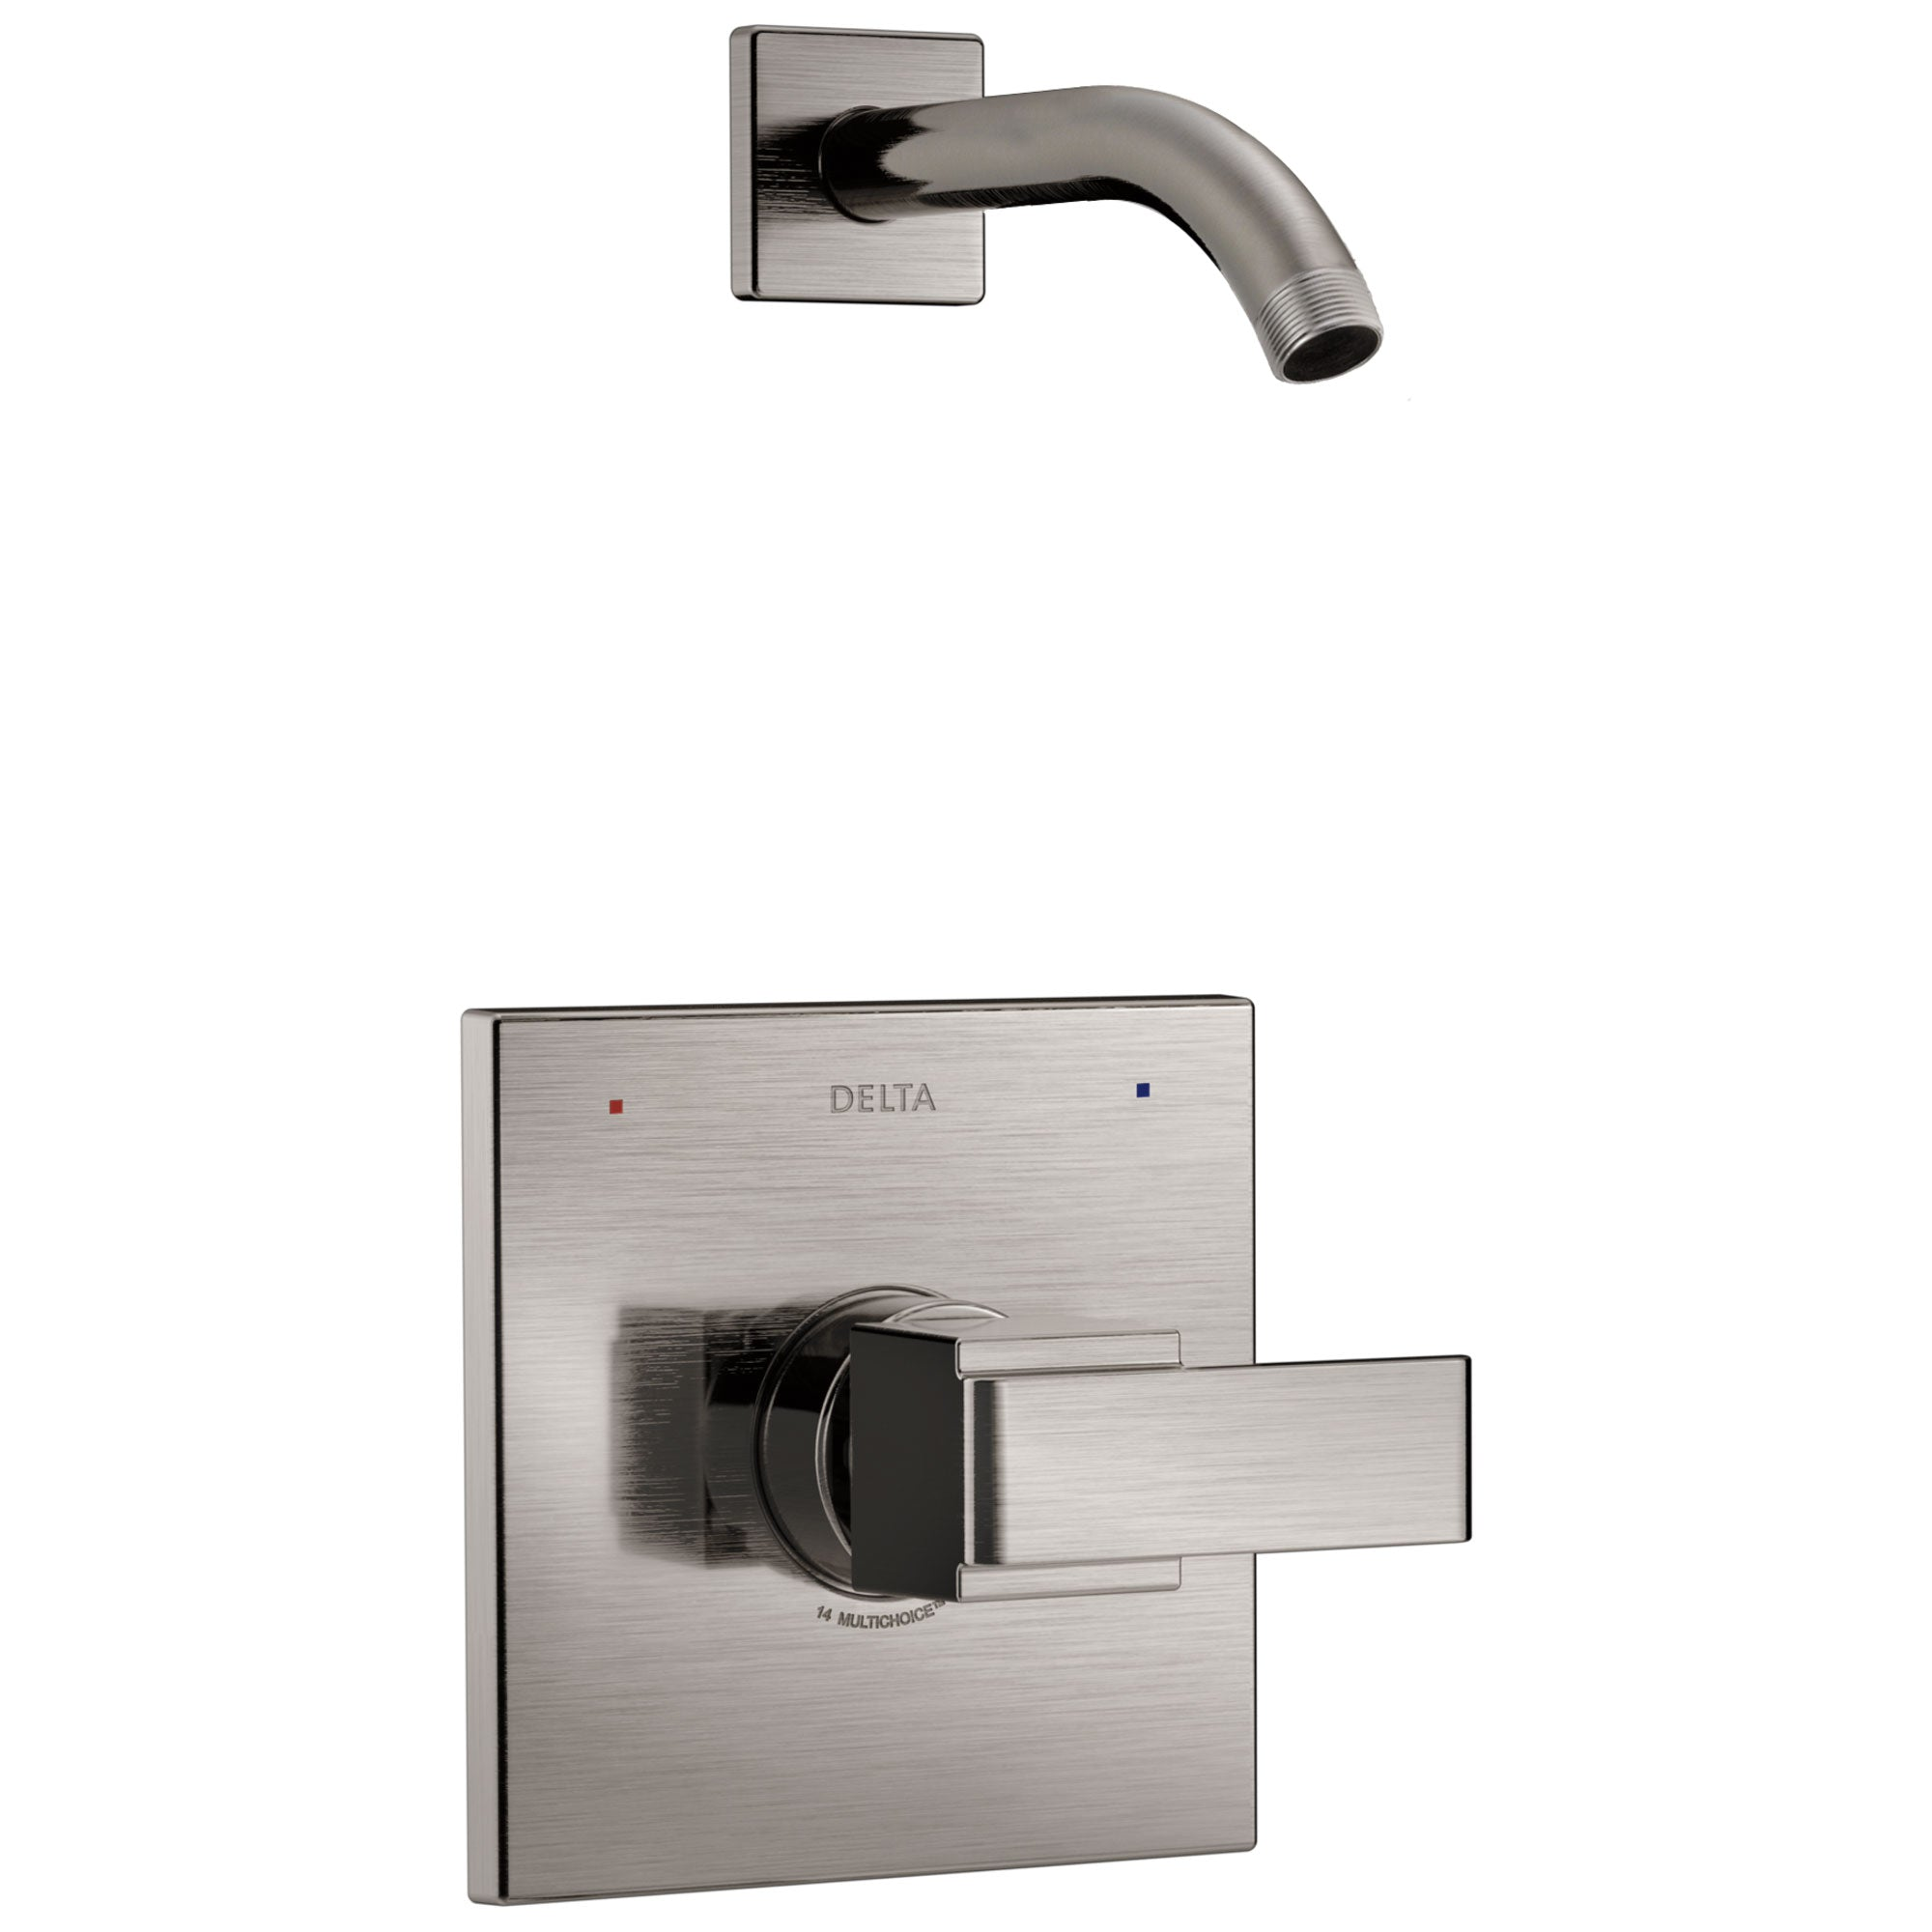 Delta Ara 1-Handle Shower Faucet Trim Kit in Stainless Steel Finish with Less Showerhead (Valve Not Included) 682970